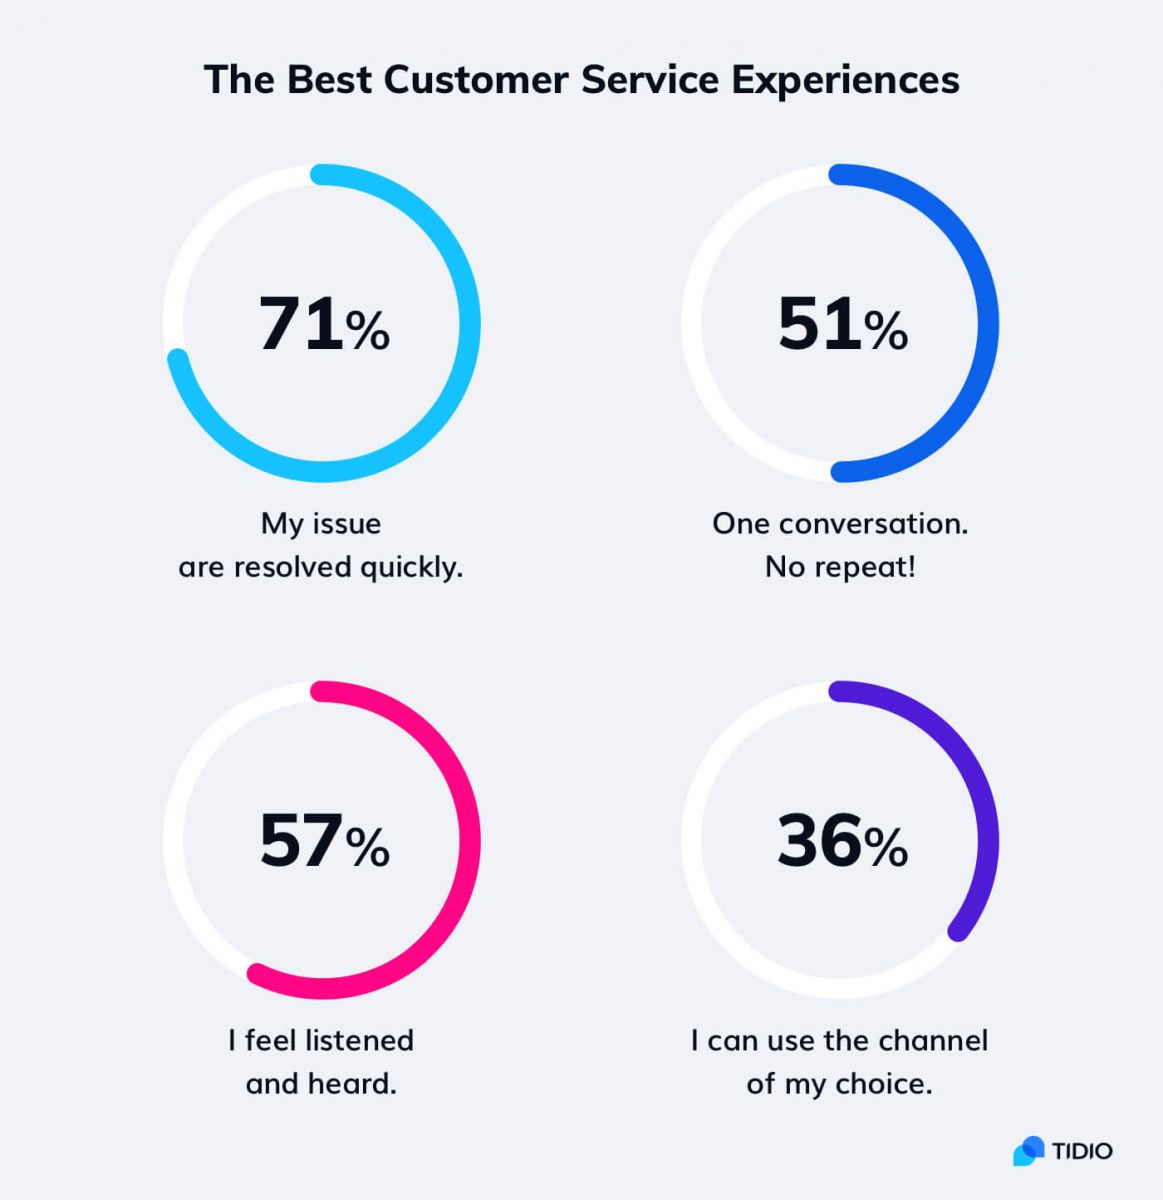 Statistics about what makes a good customer service experience